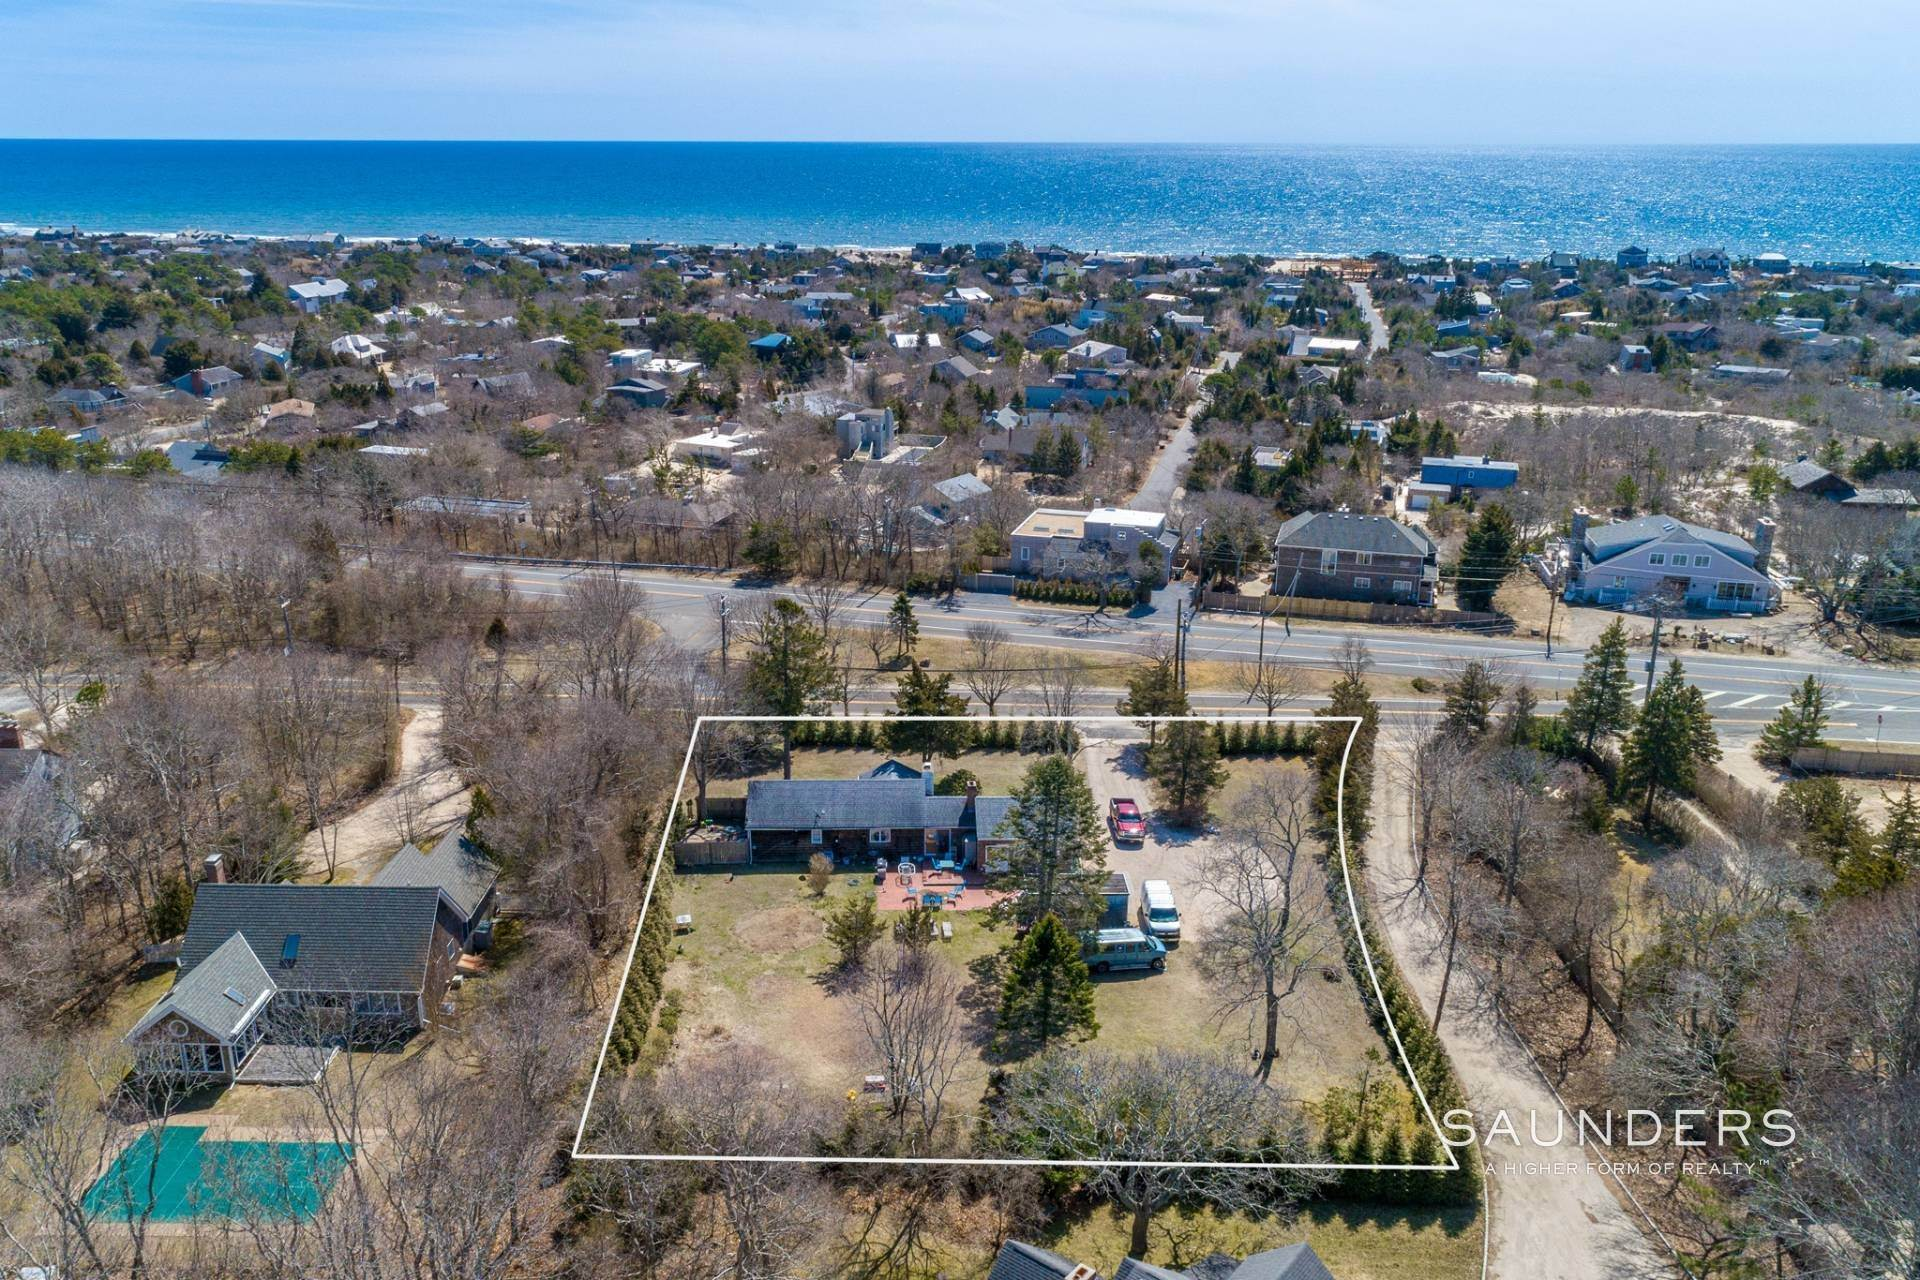 Multi-Family Homes for Sale at Development Opportunity In Amagansett 5 Cranberry Hole Road, Amagansett, East Hampton Town, NY 11930